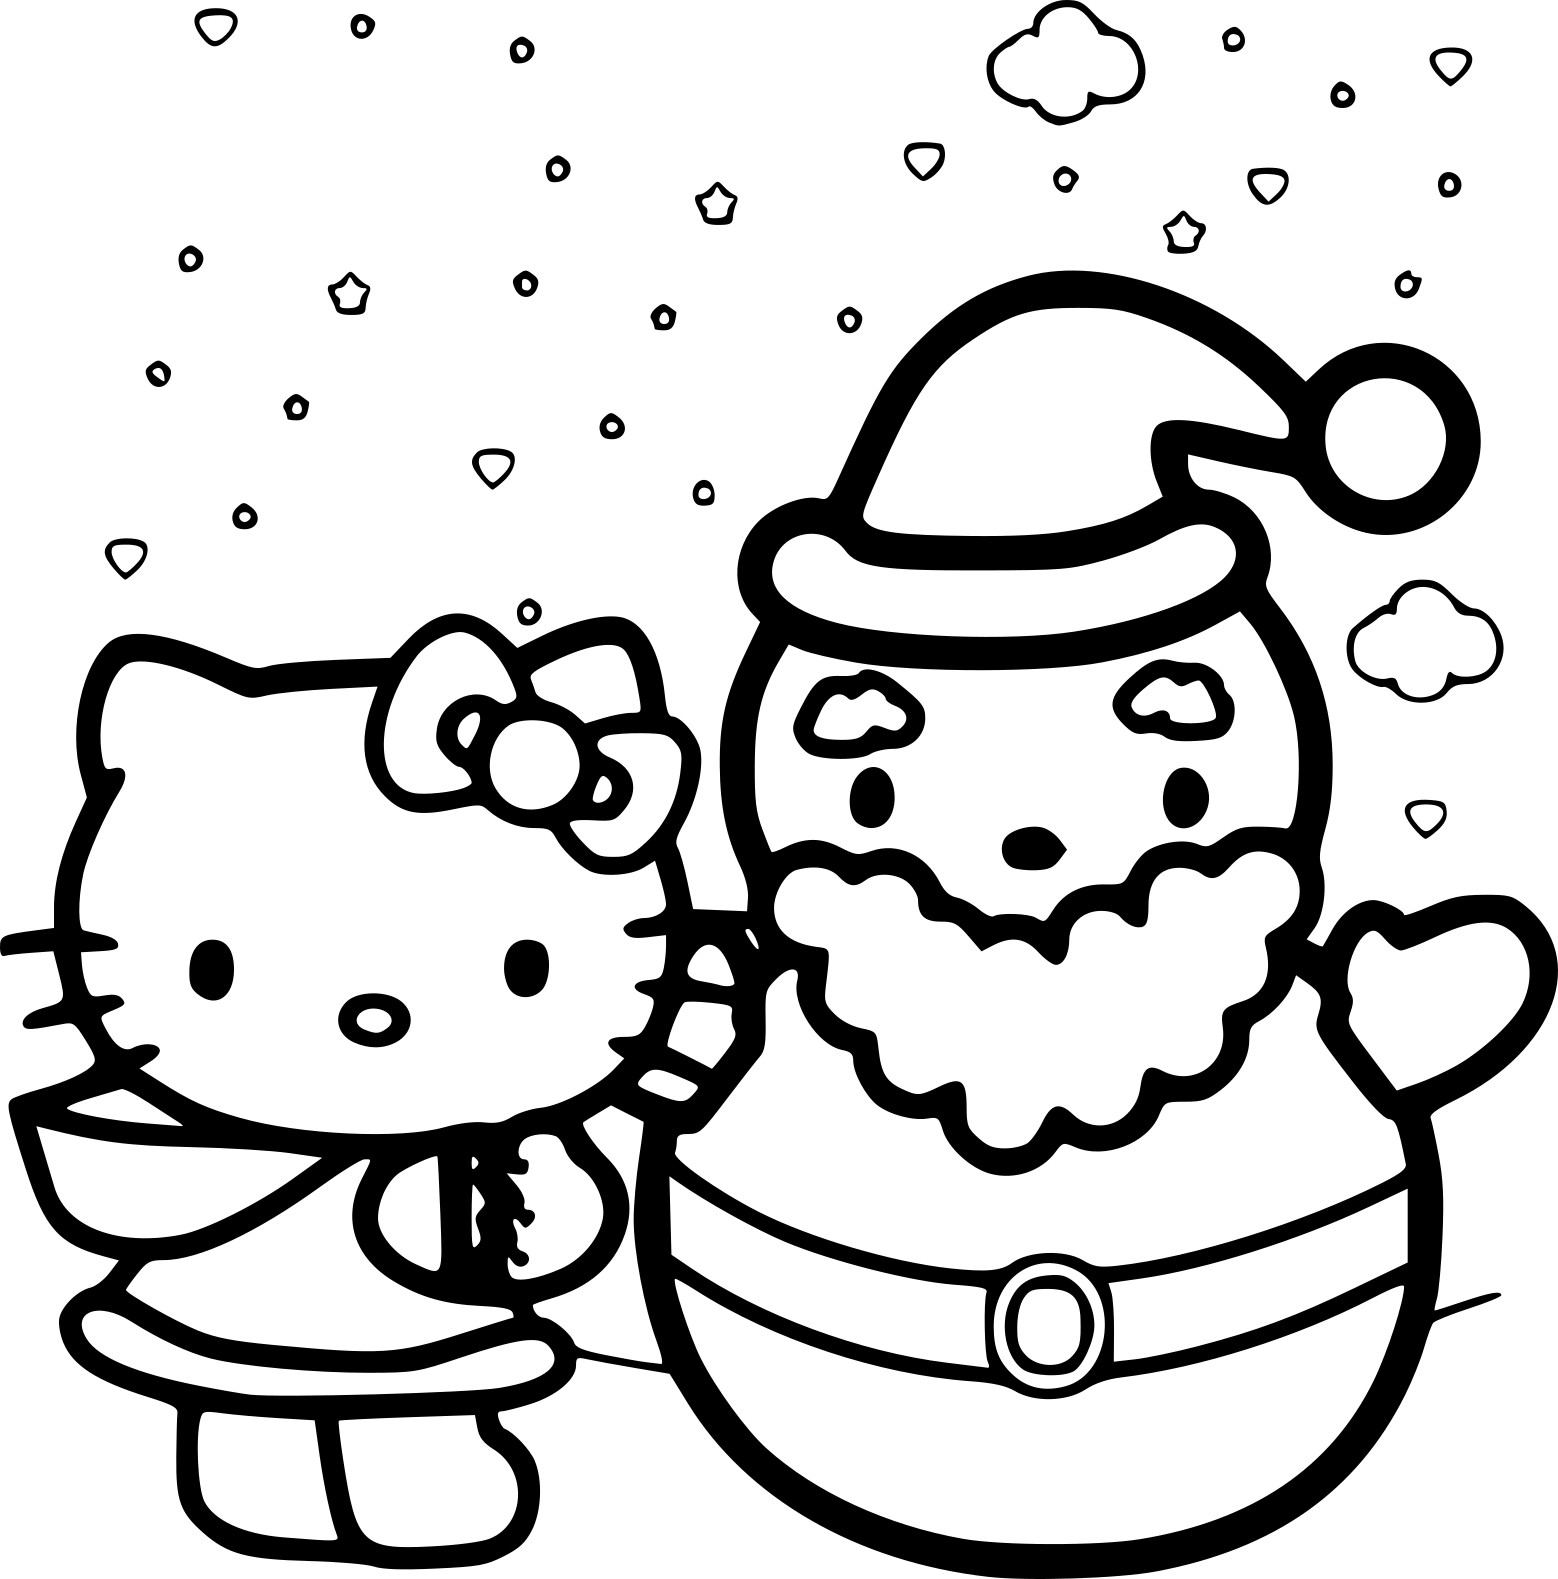 Coloriage hello kitty no l imprimer - Coloriage hello kitty a colorier ...